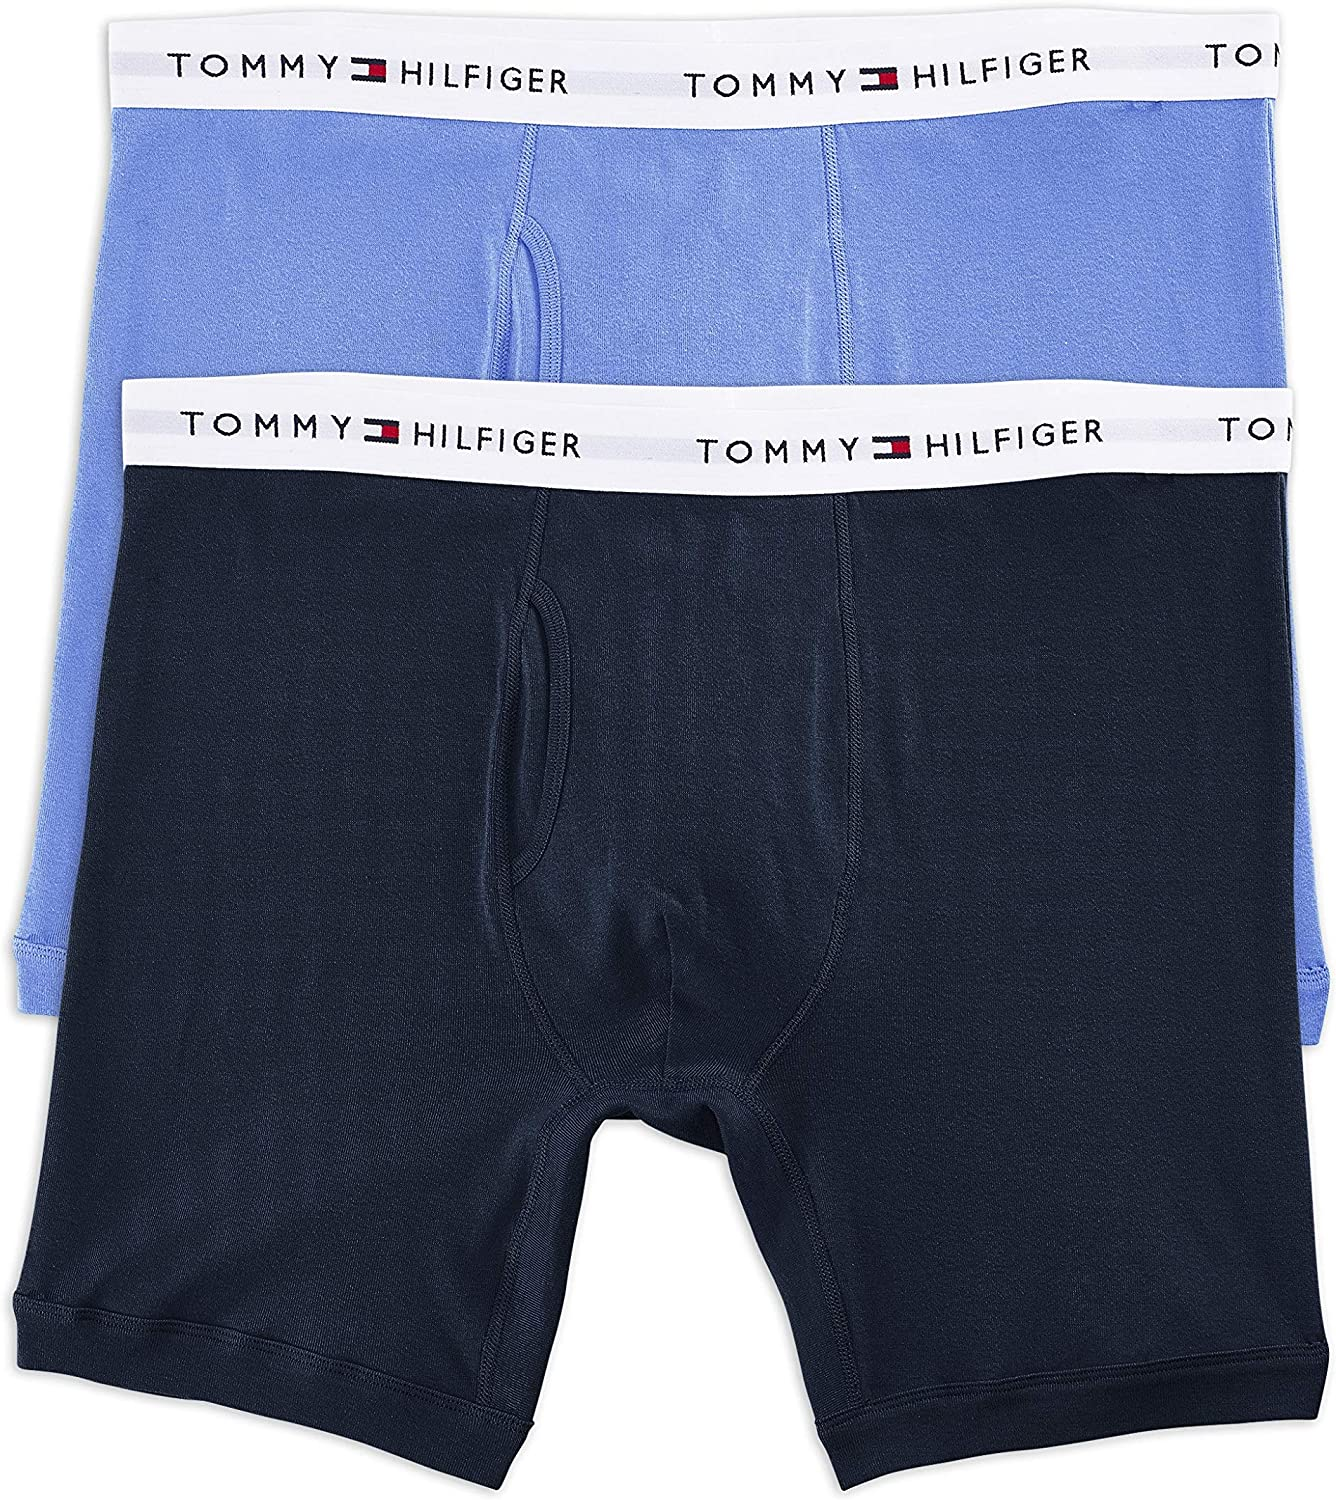 Tommy Hilfiger Big and Tall 2-Pk Boxer Briefs